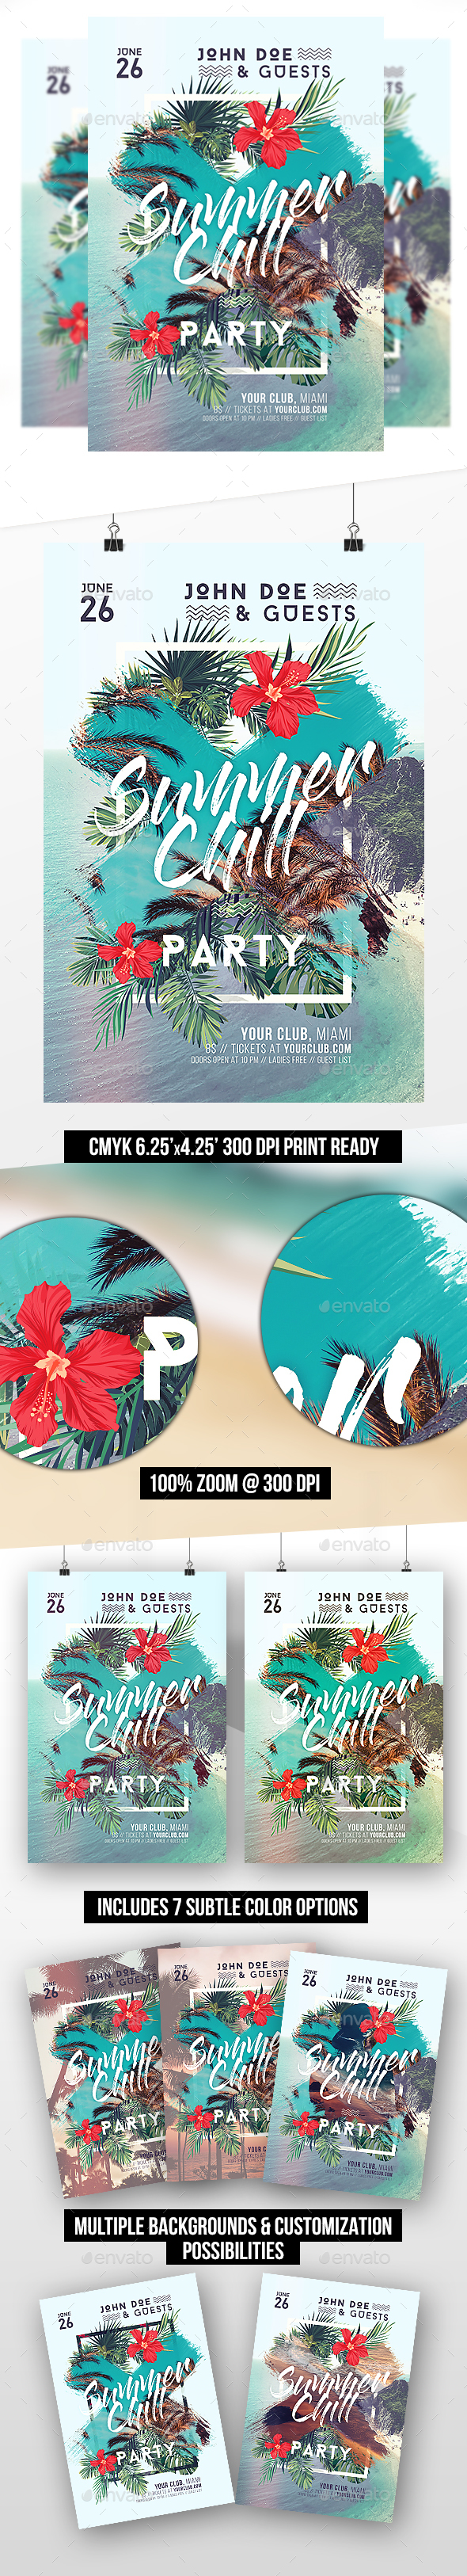 Summer Chill Party Template - Clubs & Parties Events